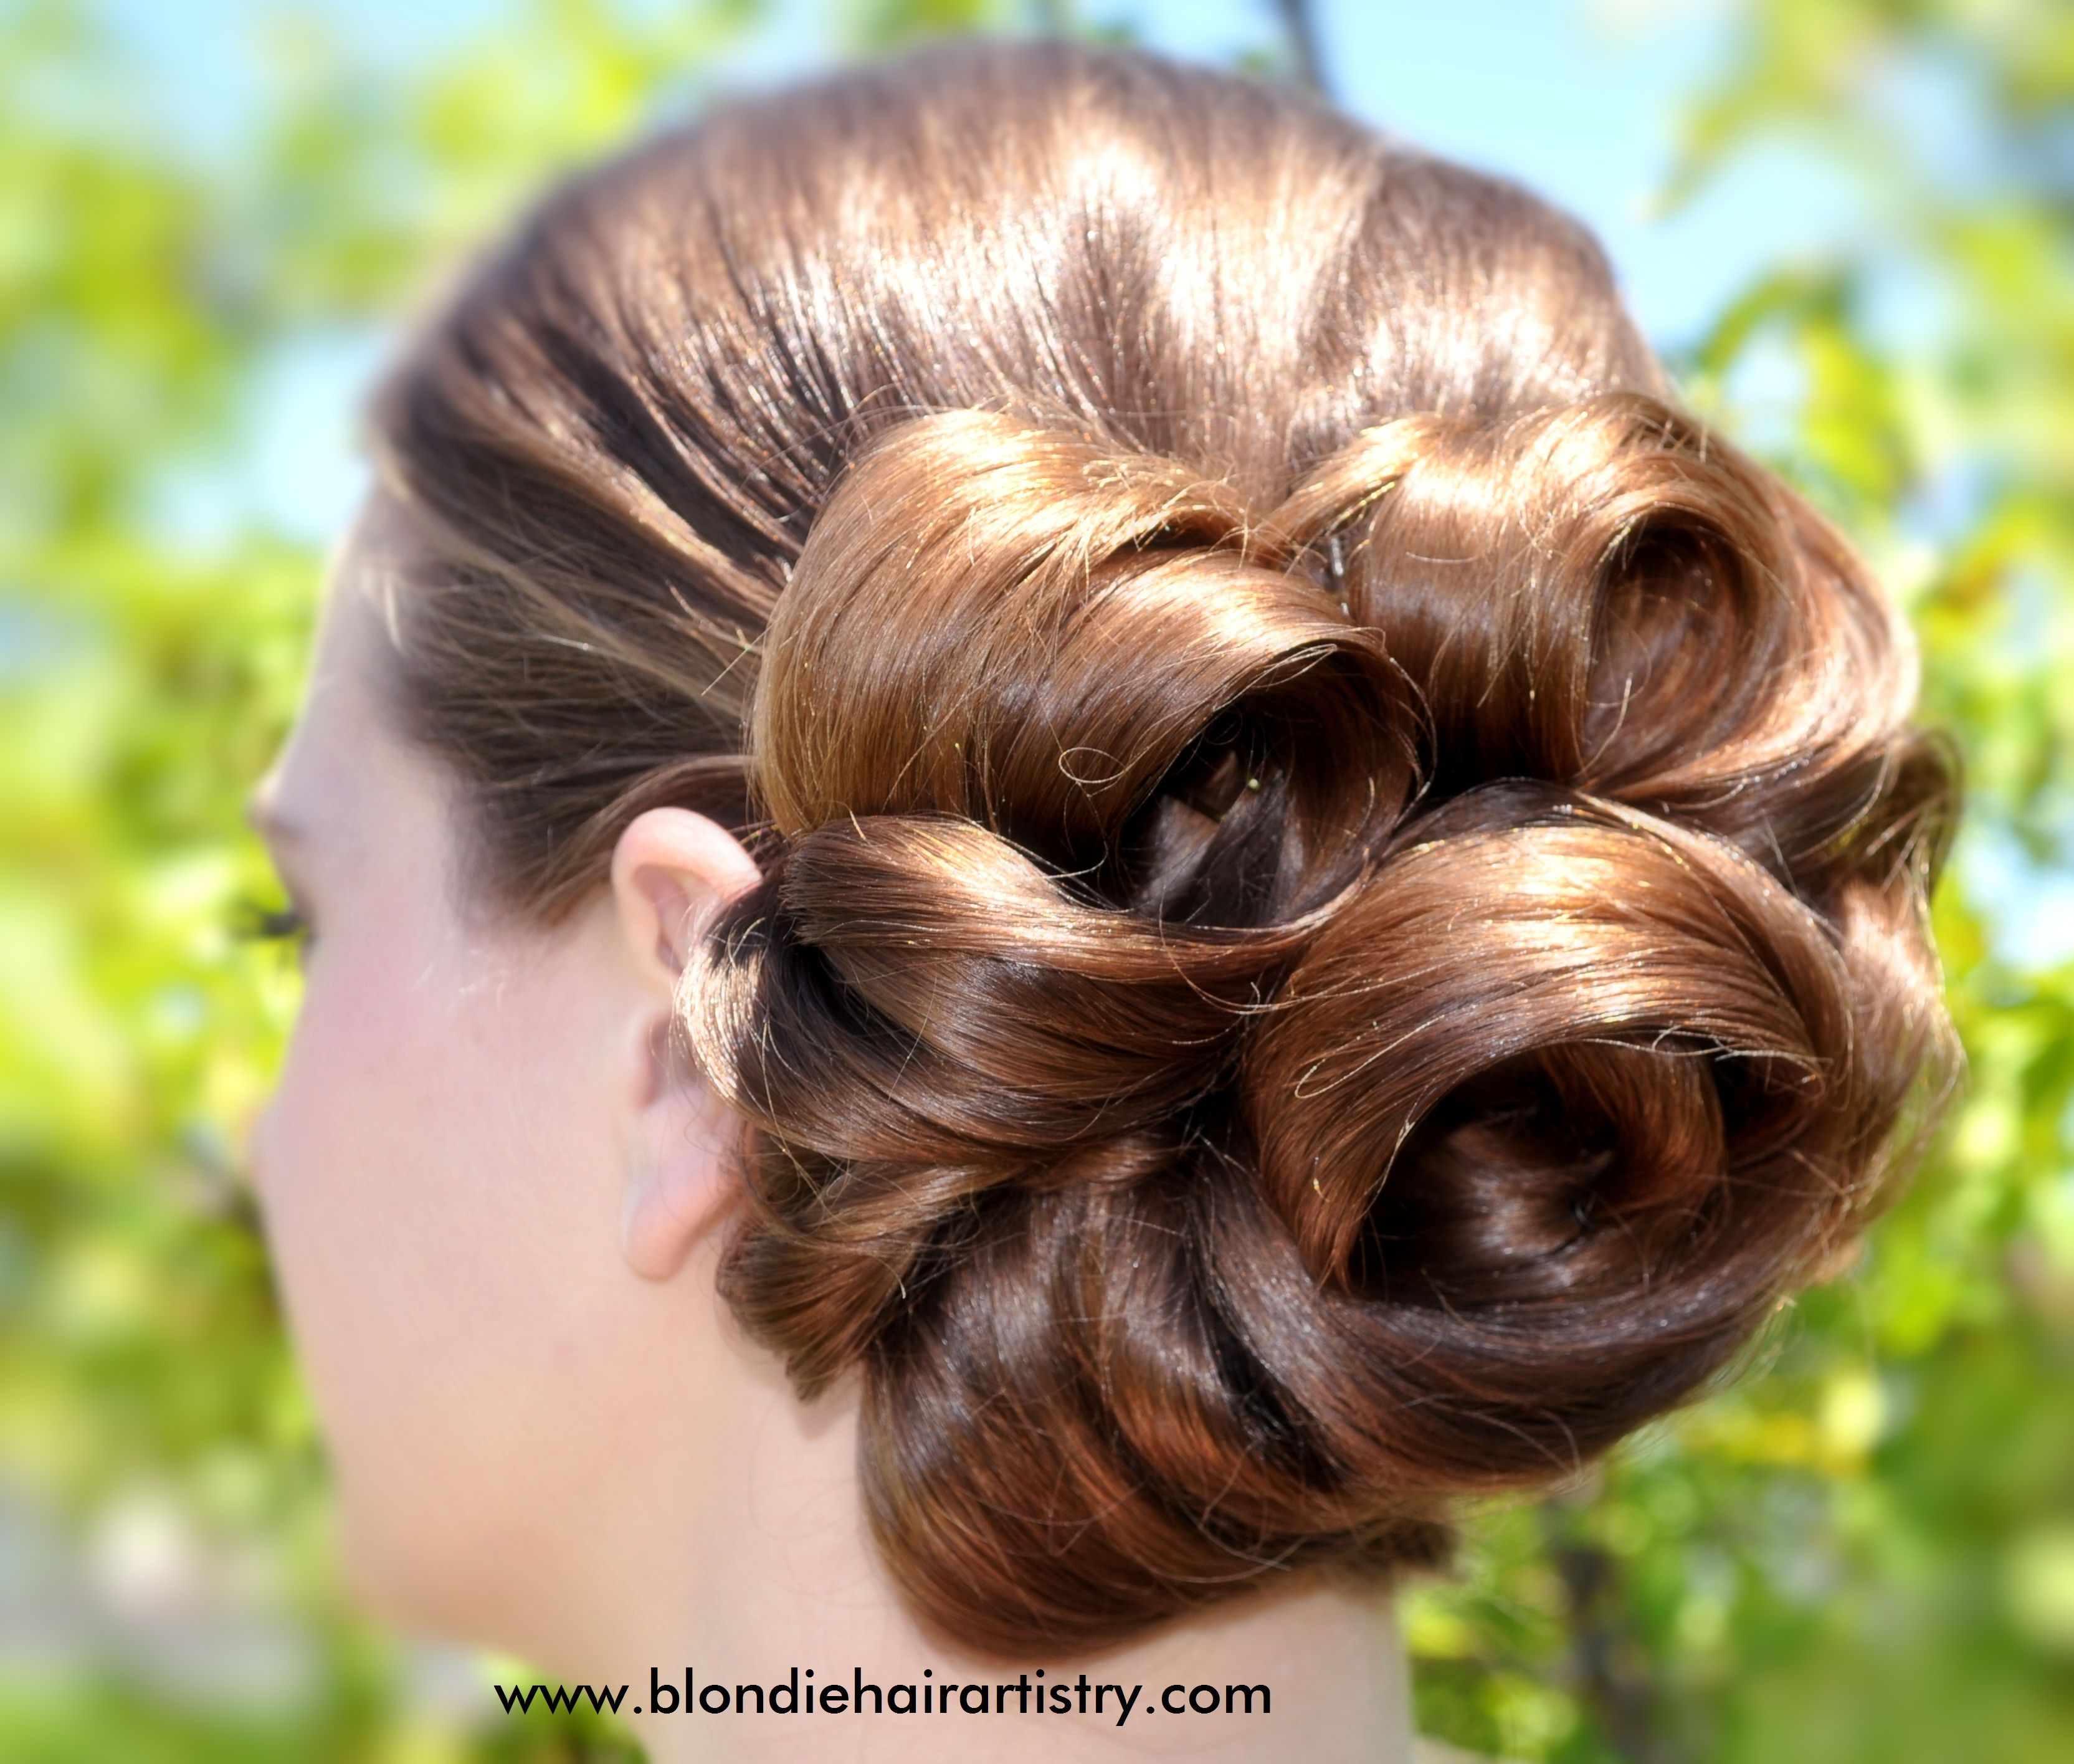 up hair styles for prom vintage chic rock paper scissors hair do spa hair 3049 | cd71204279df7a5061a3049c01111315